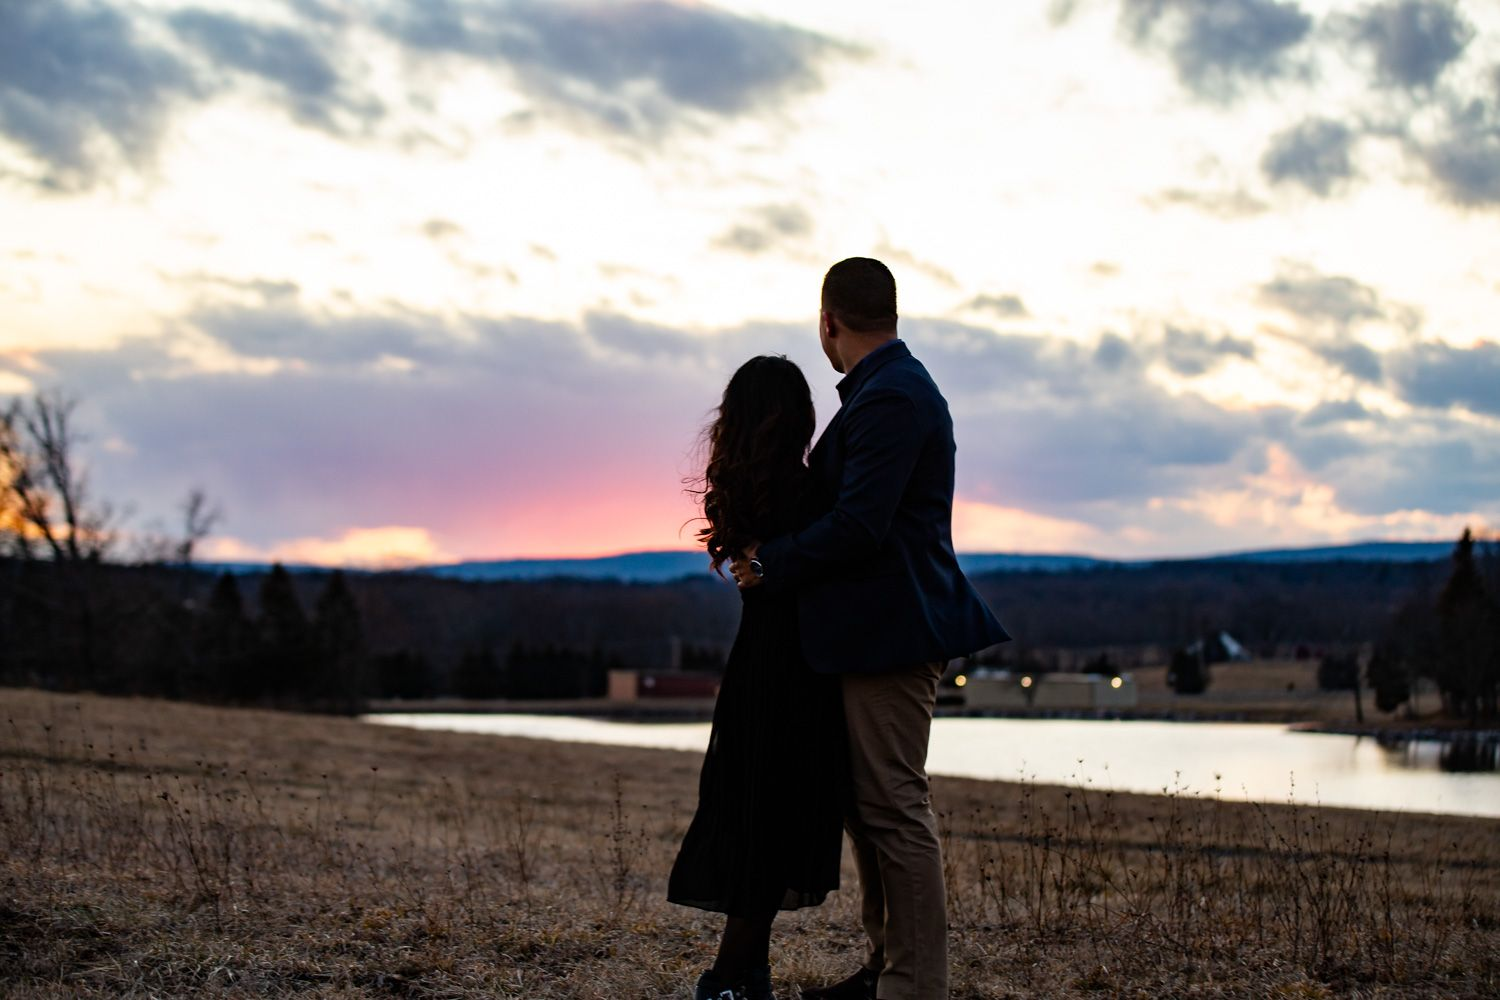 Engaged couple watch the sunset over Watchtower Farms in Wallkill, New York